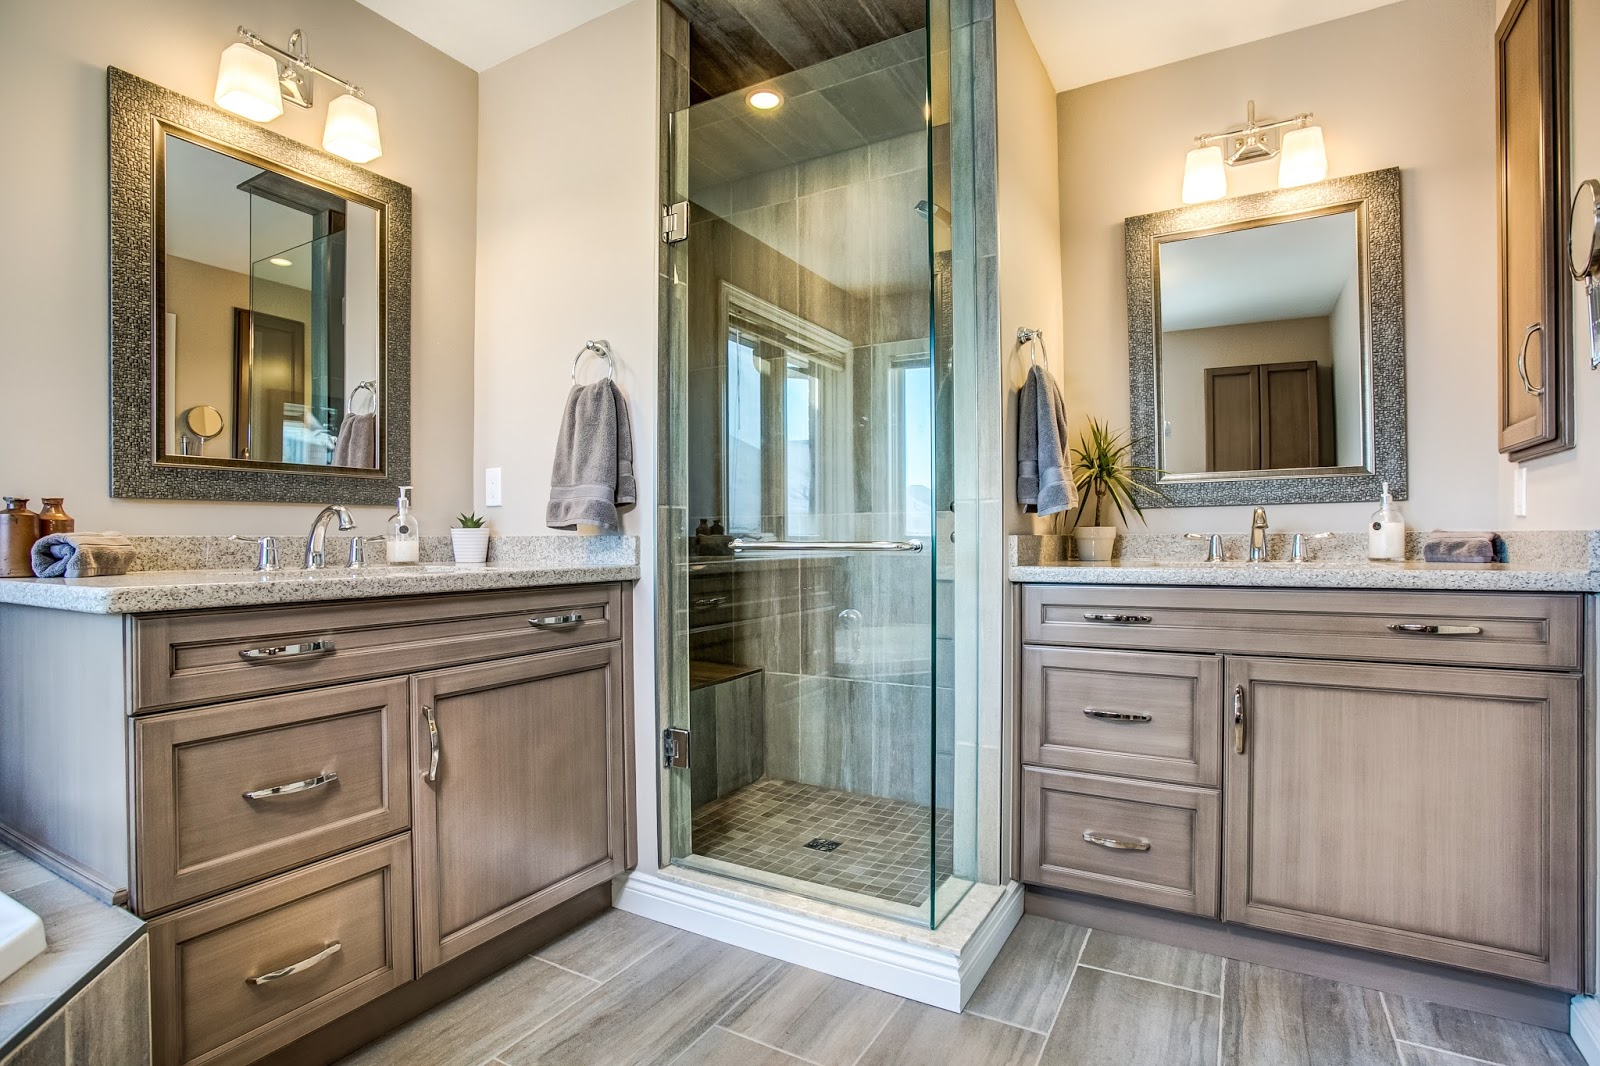 Bathroom Remodel Cost 2017 2018 Budget Average Luxury Home Remodeling Costs Guide